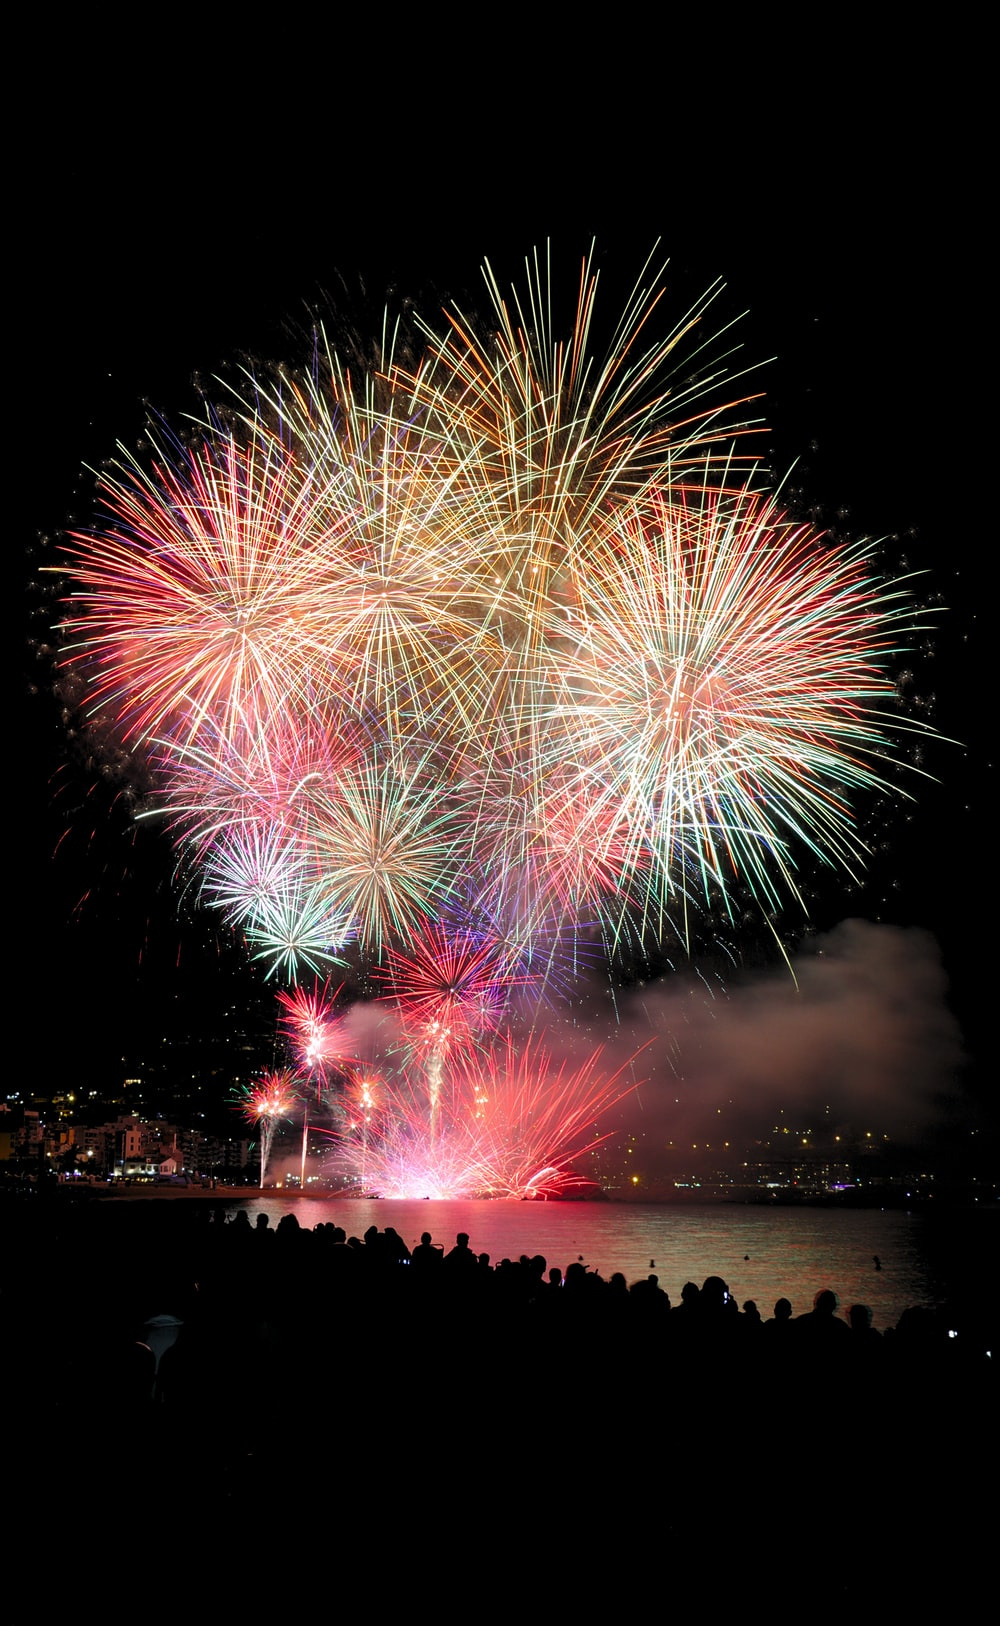 firework pictures hq download free images on unsplash